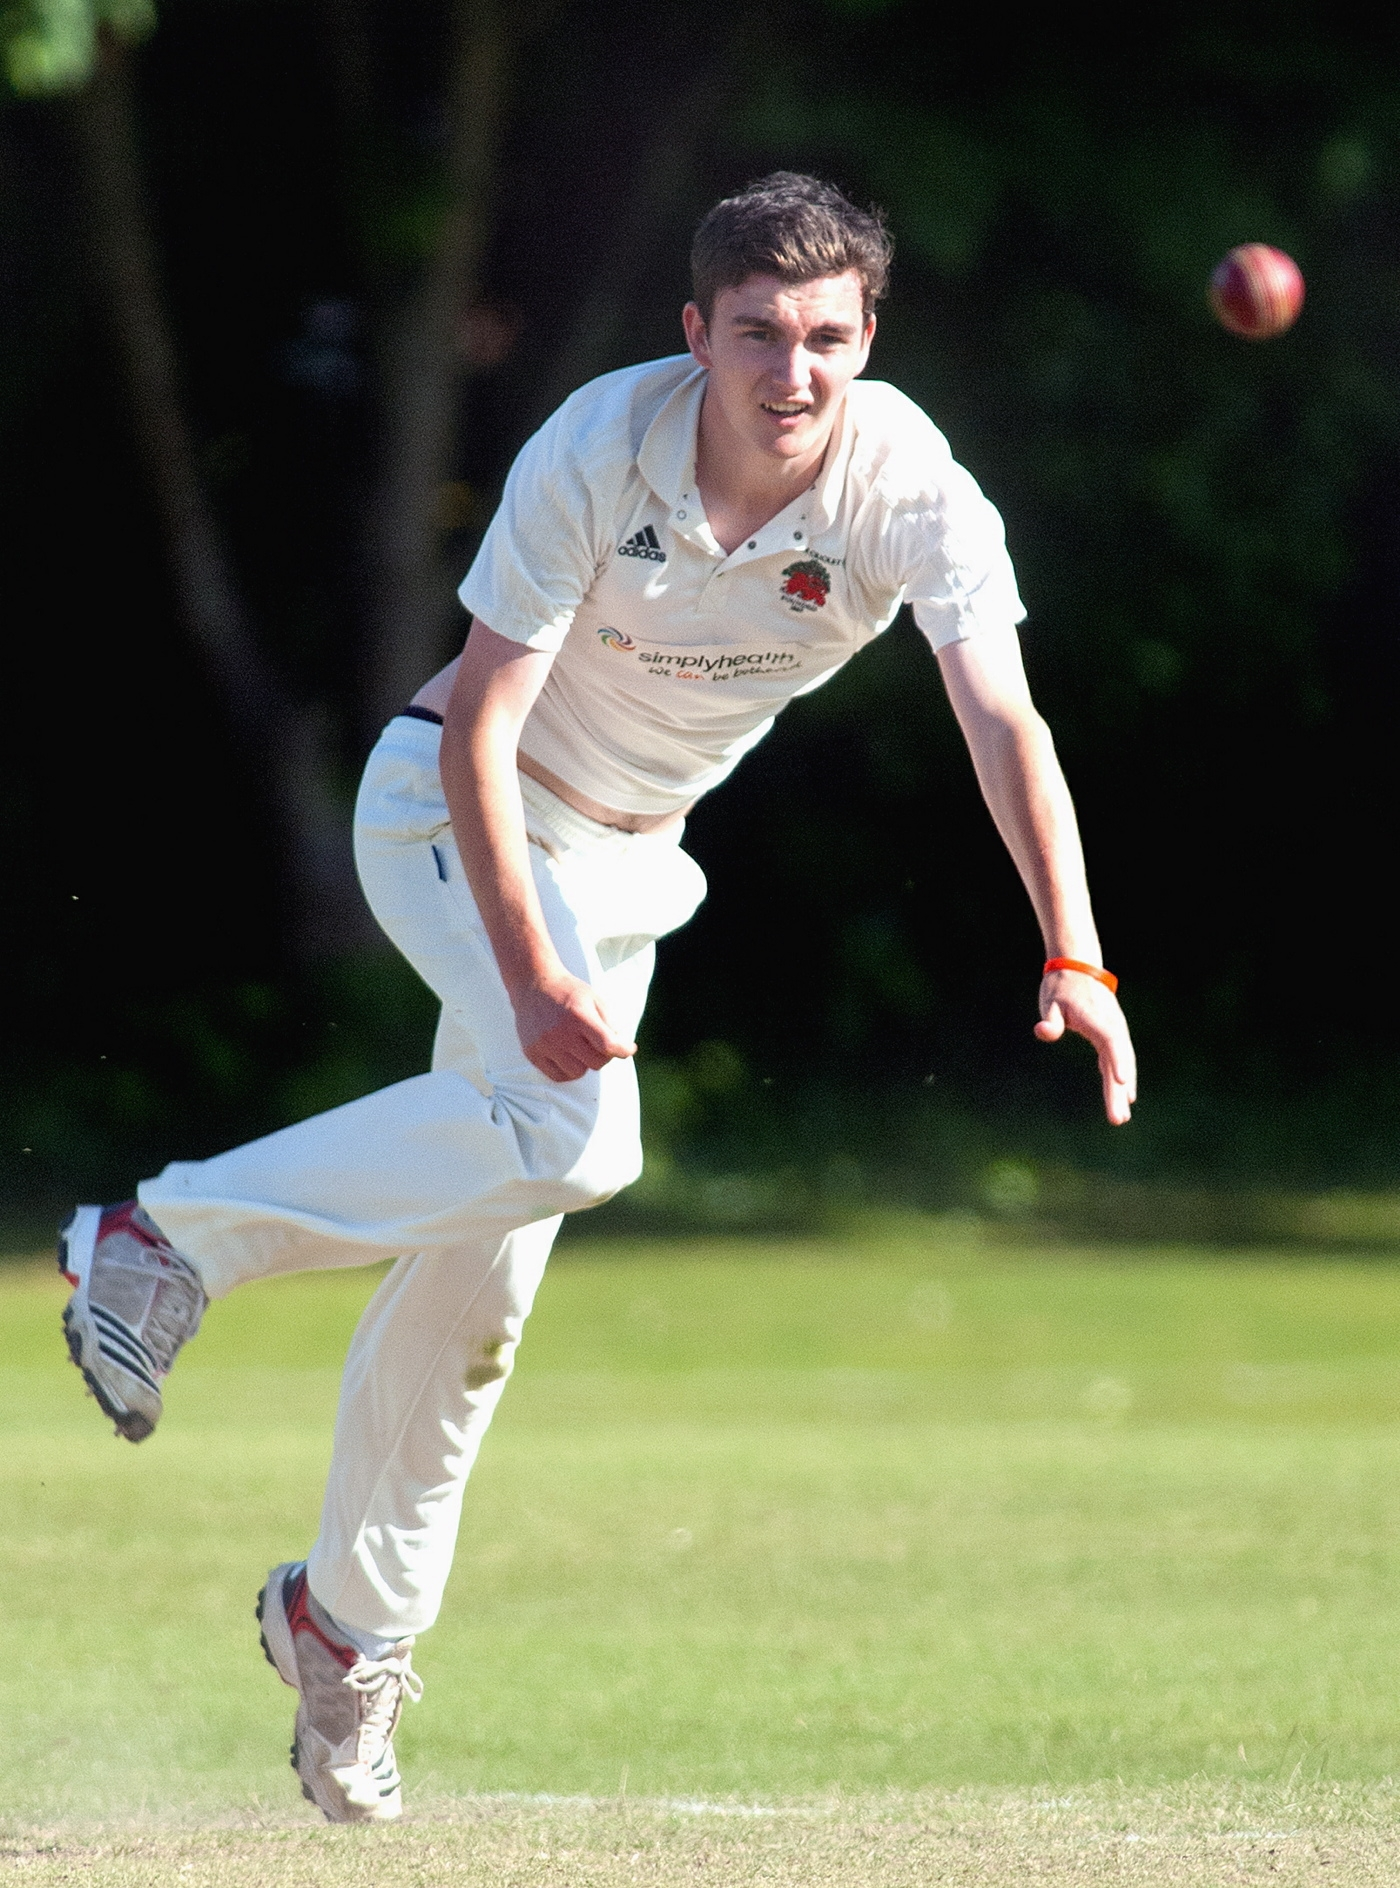 Dan Turner was among the wickets in the Seconds big win at Steeple Langford on Saturday